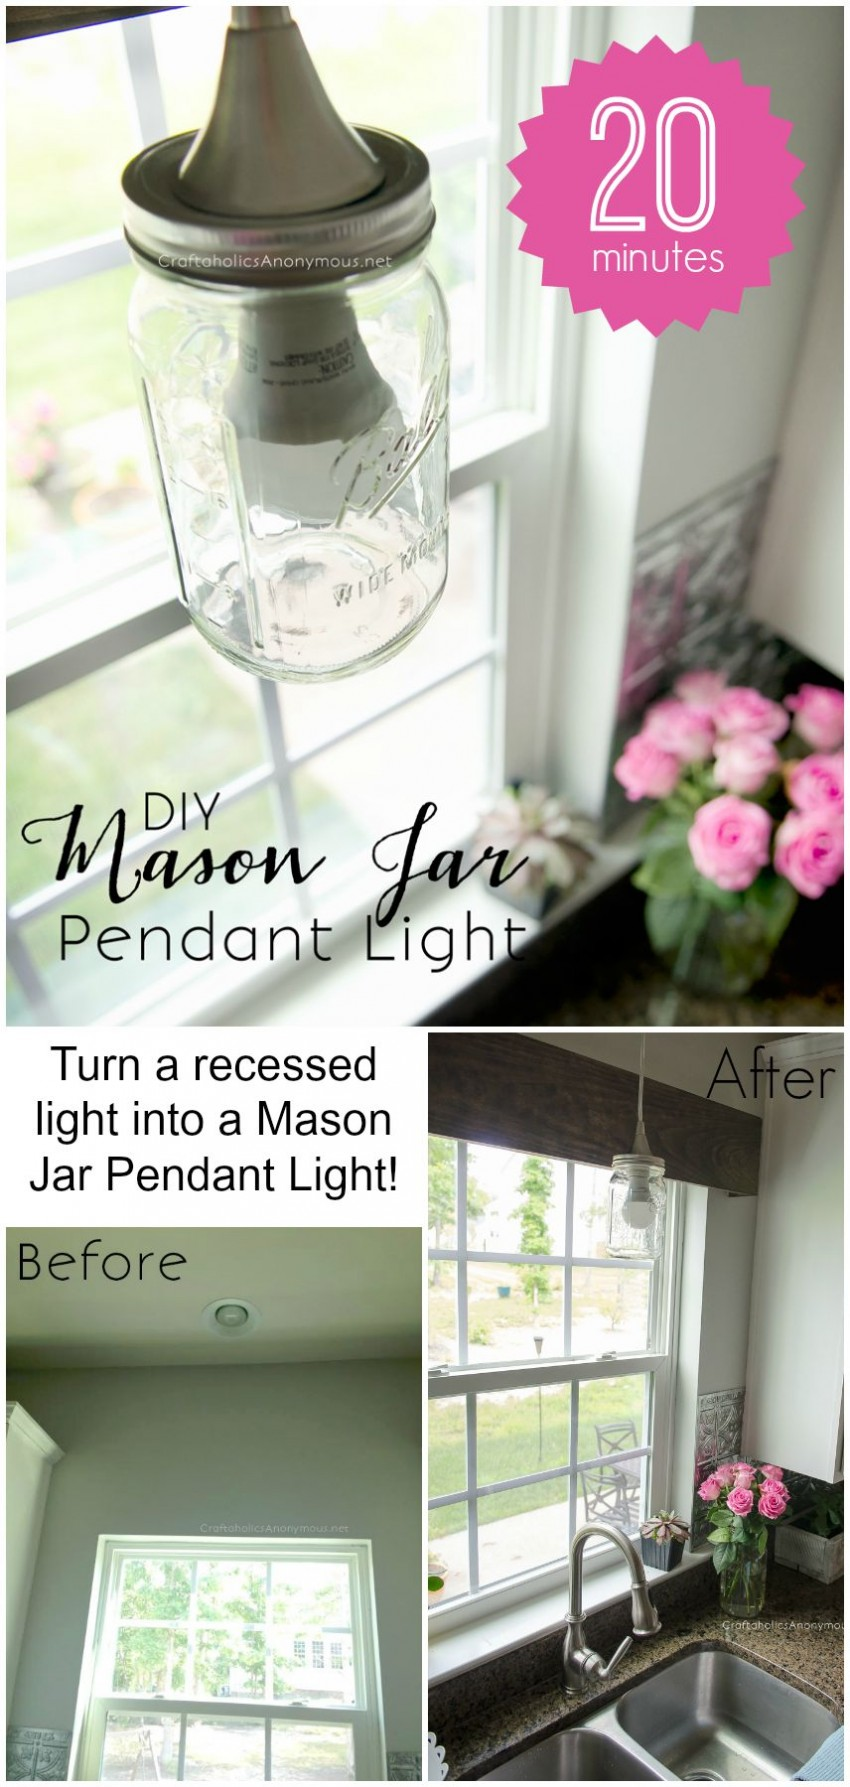 DIY Mason Jar Pendant light :: Super easy way to turn a recessed light into a Mason Jar light for only $20.